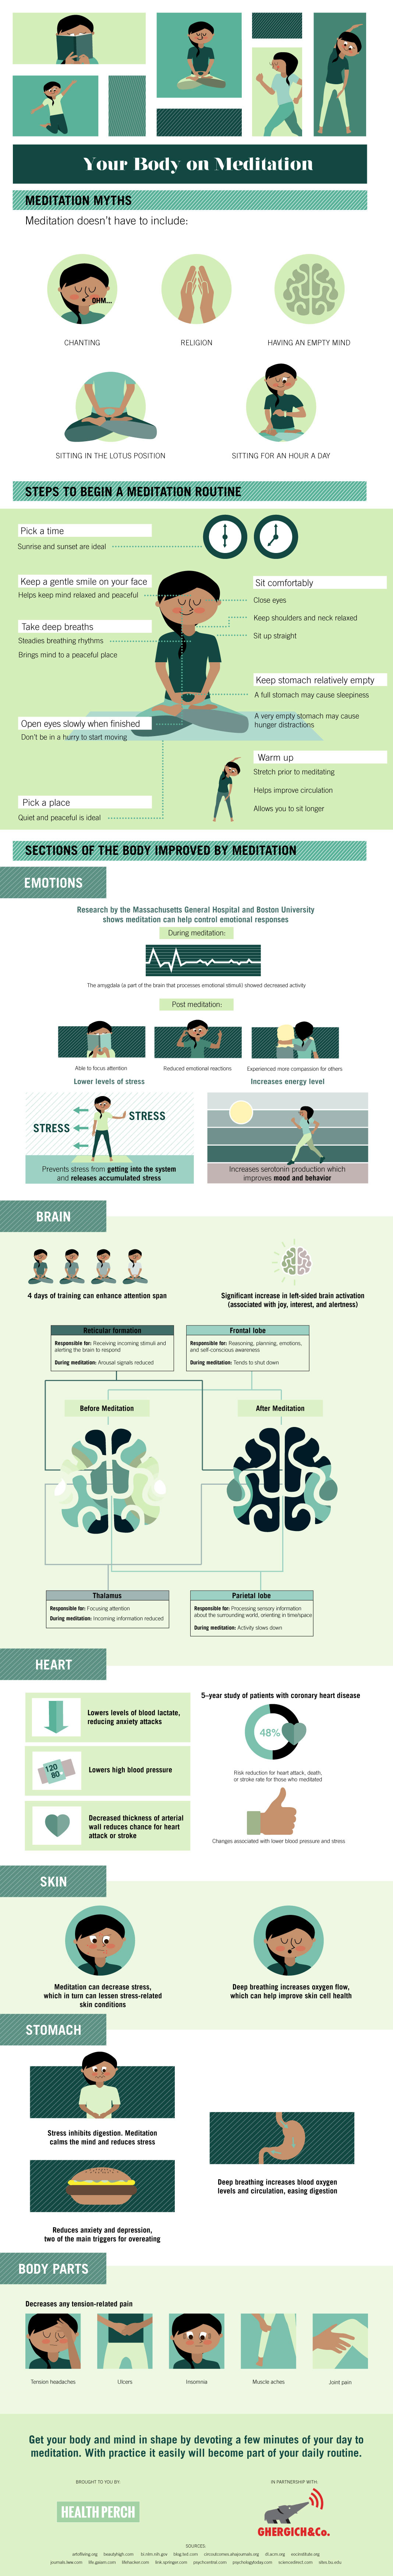 Infographic: Benefits of Meditation